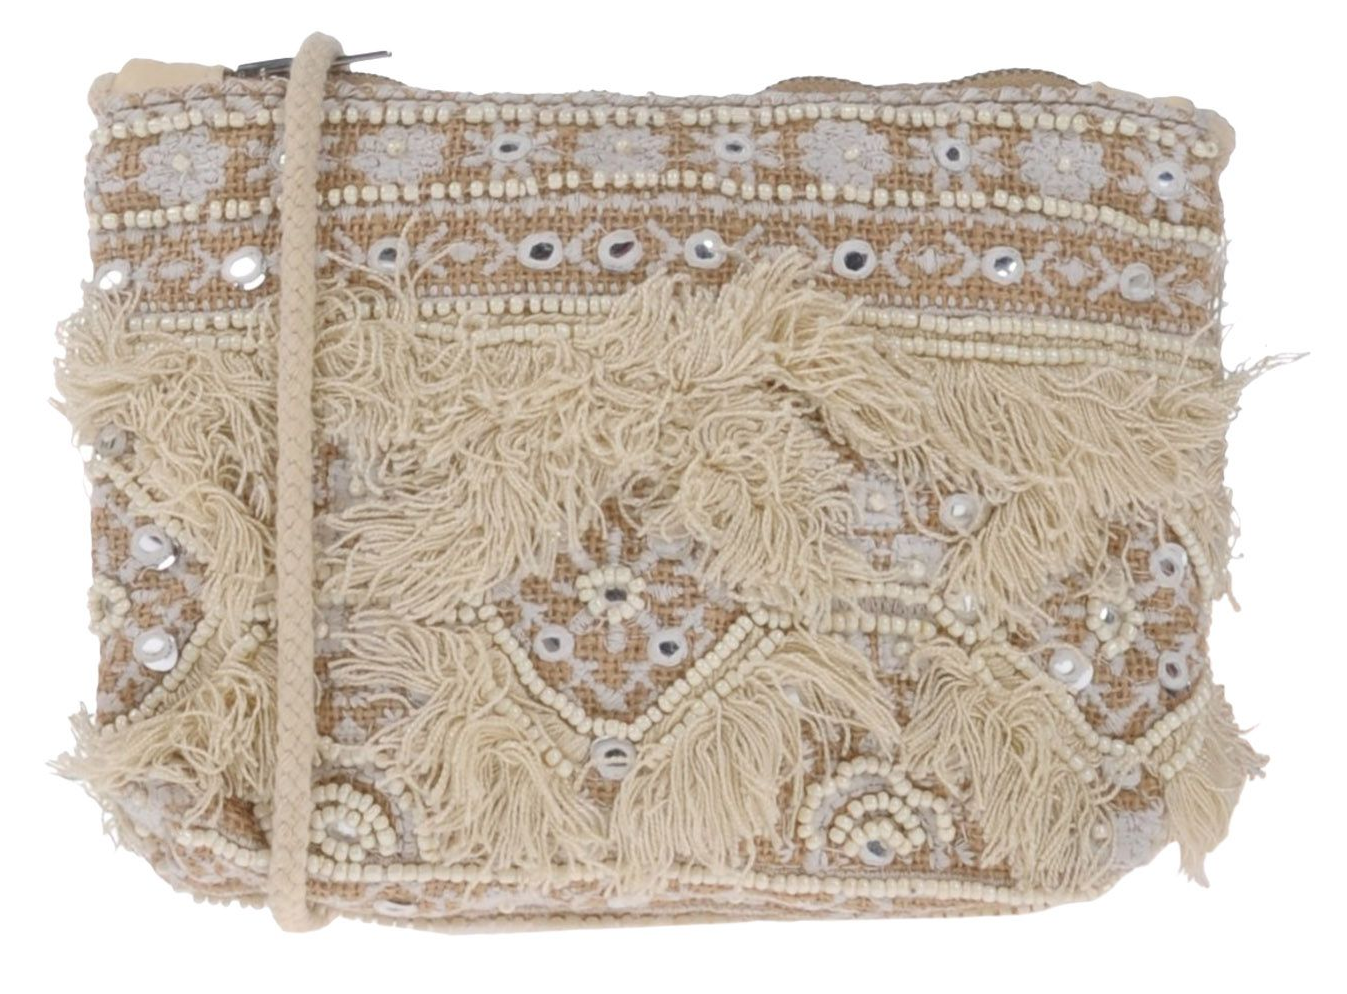 Antik Batik Embroidered Bag - $48